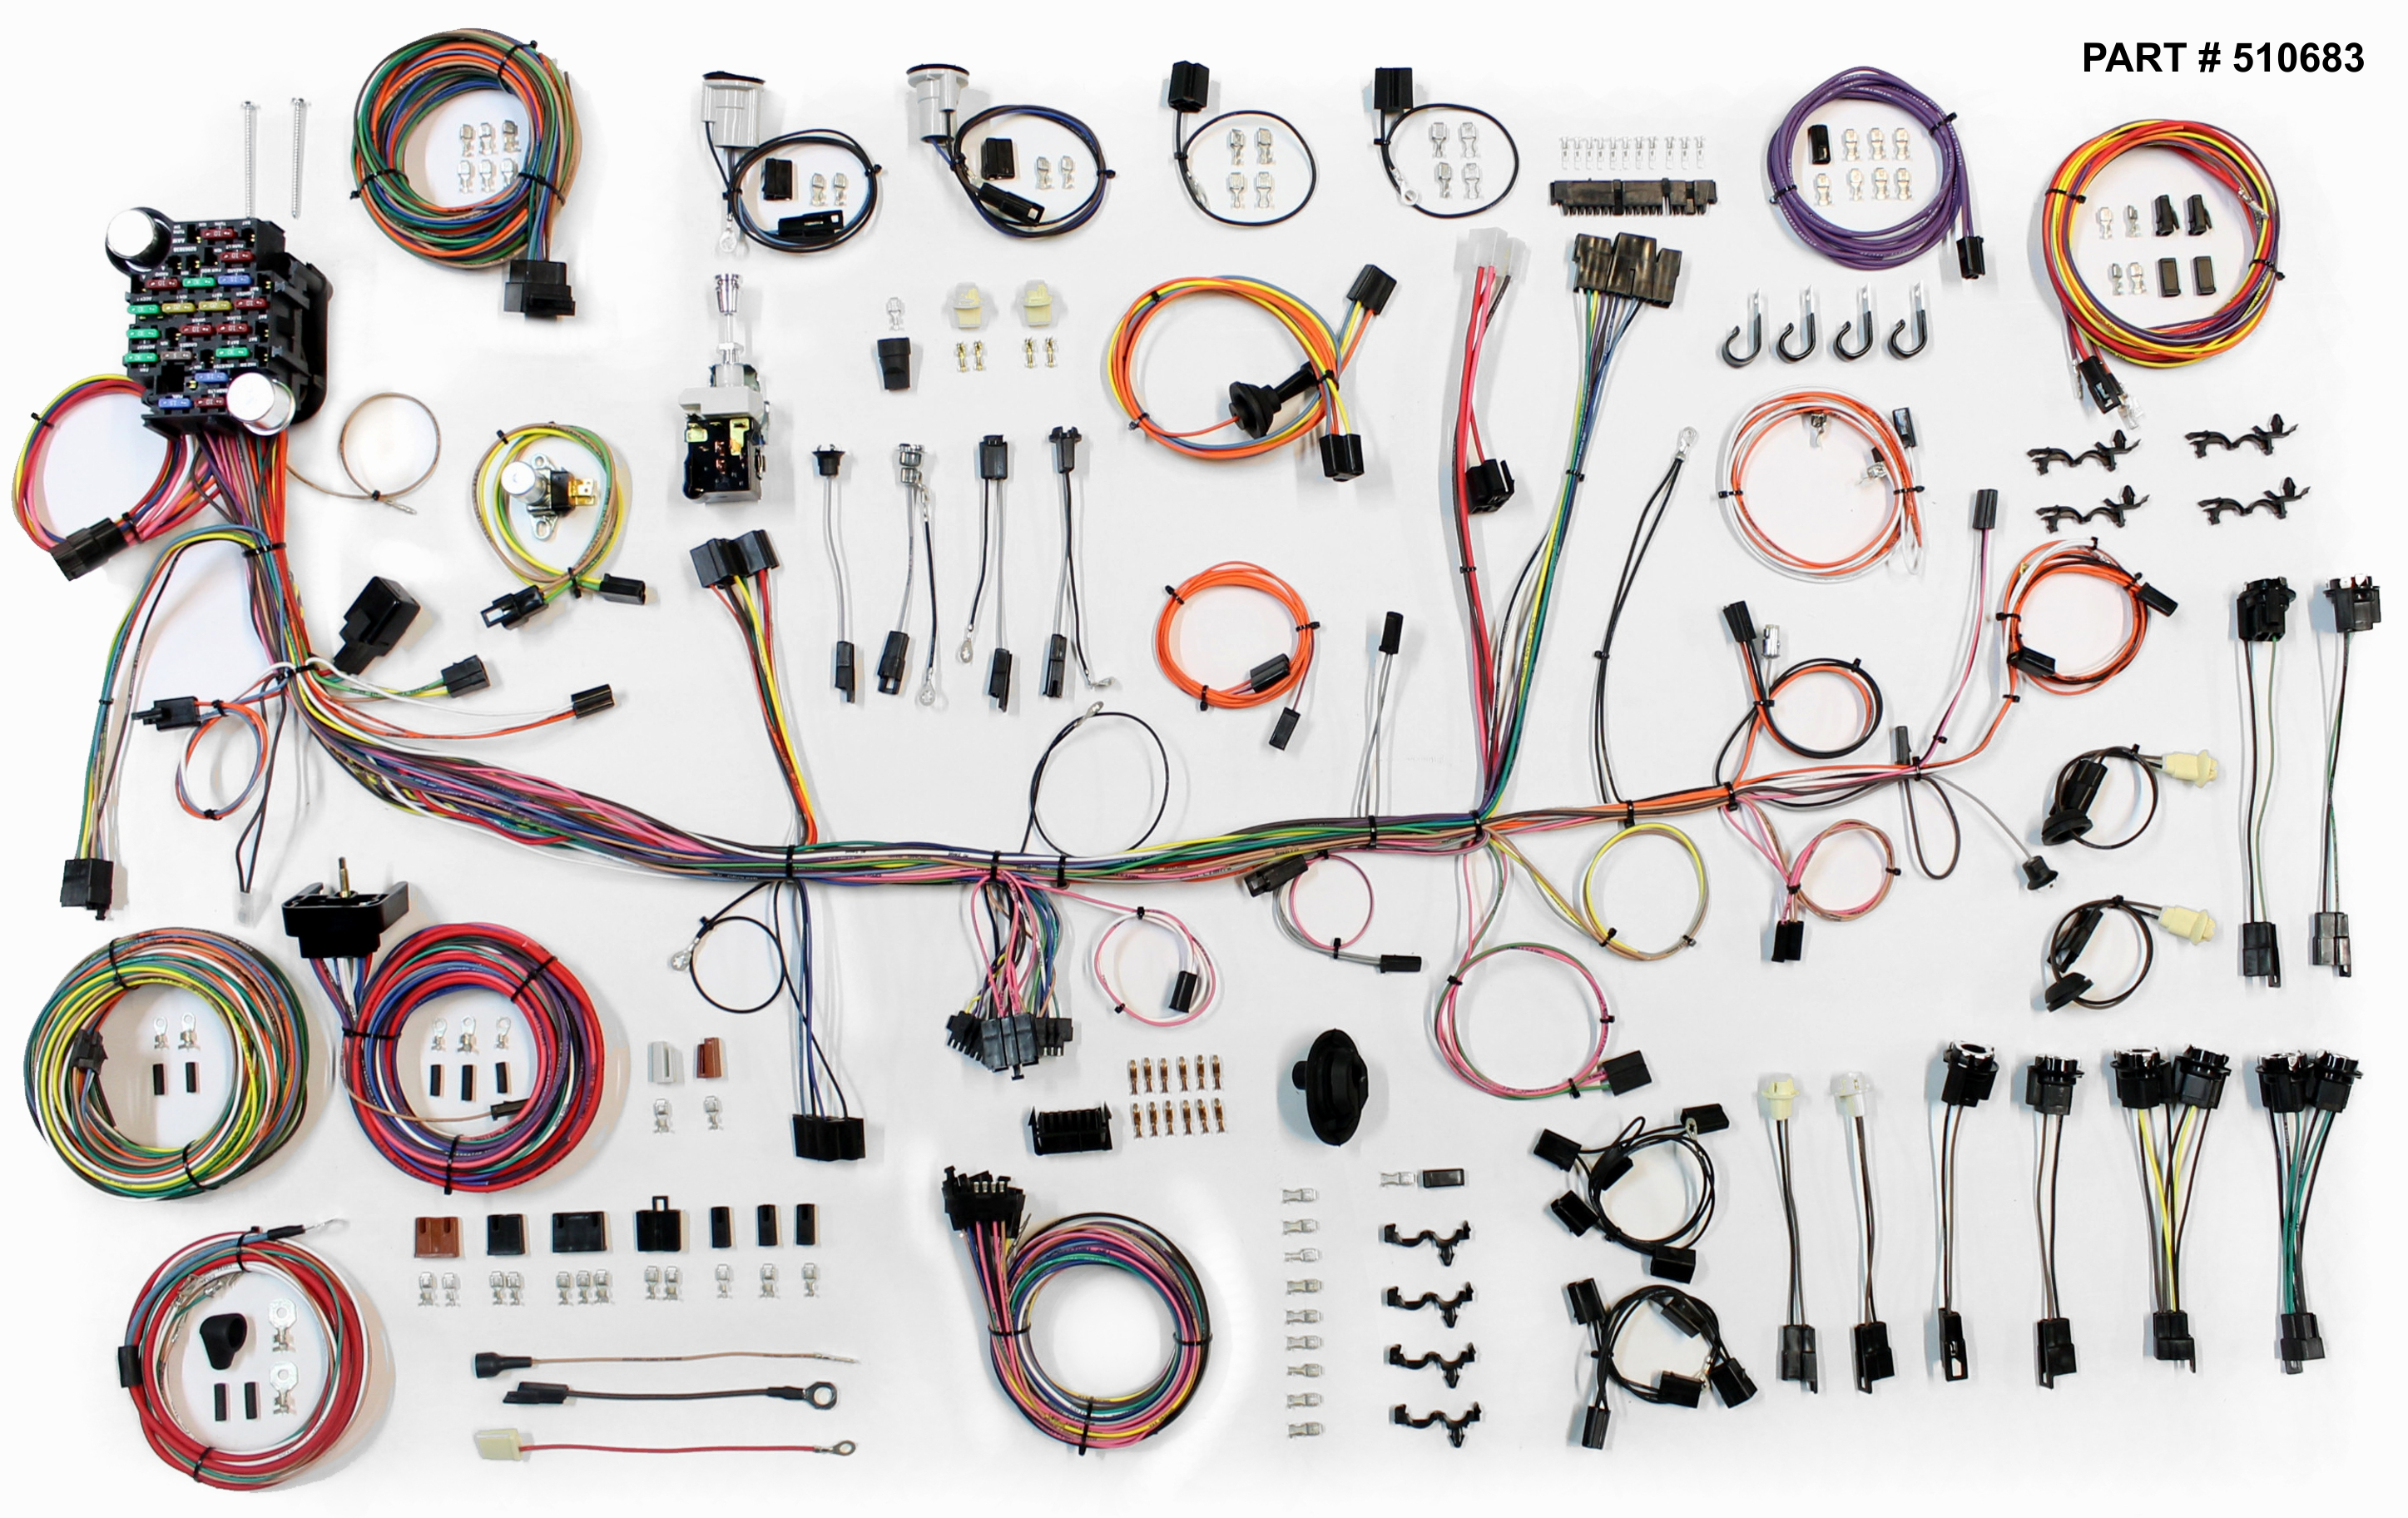 1974-78 firebird restomod wiring harness system